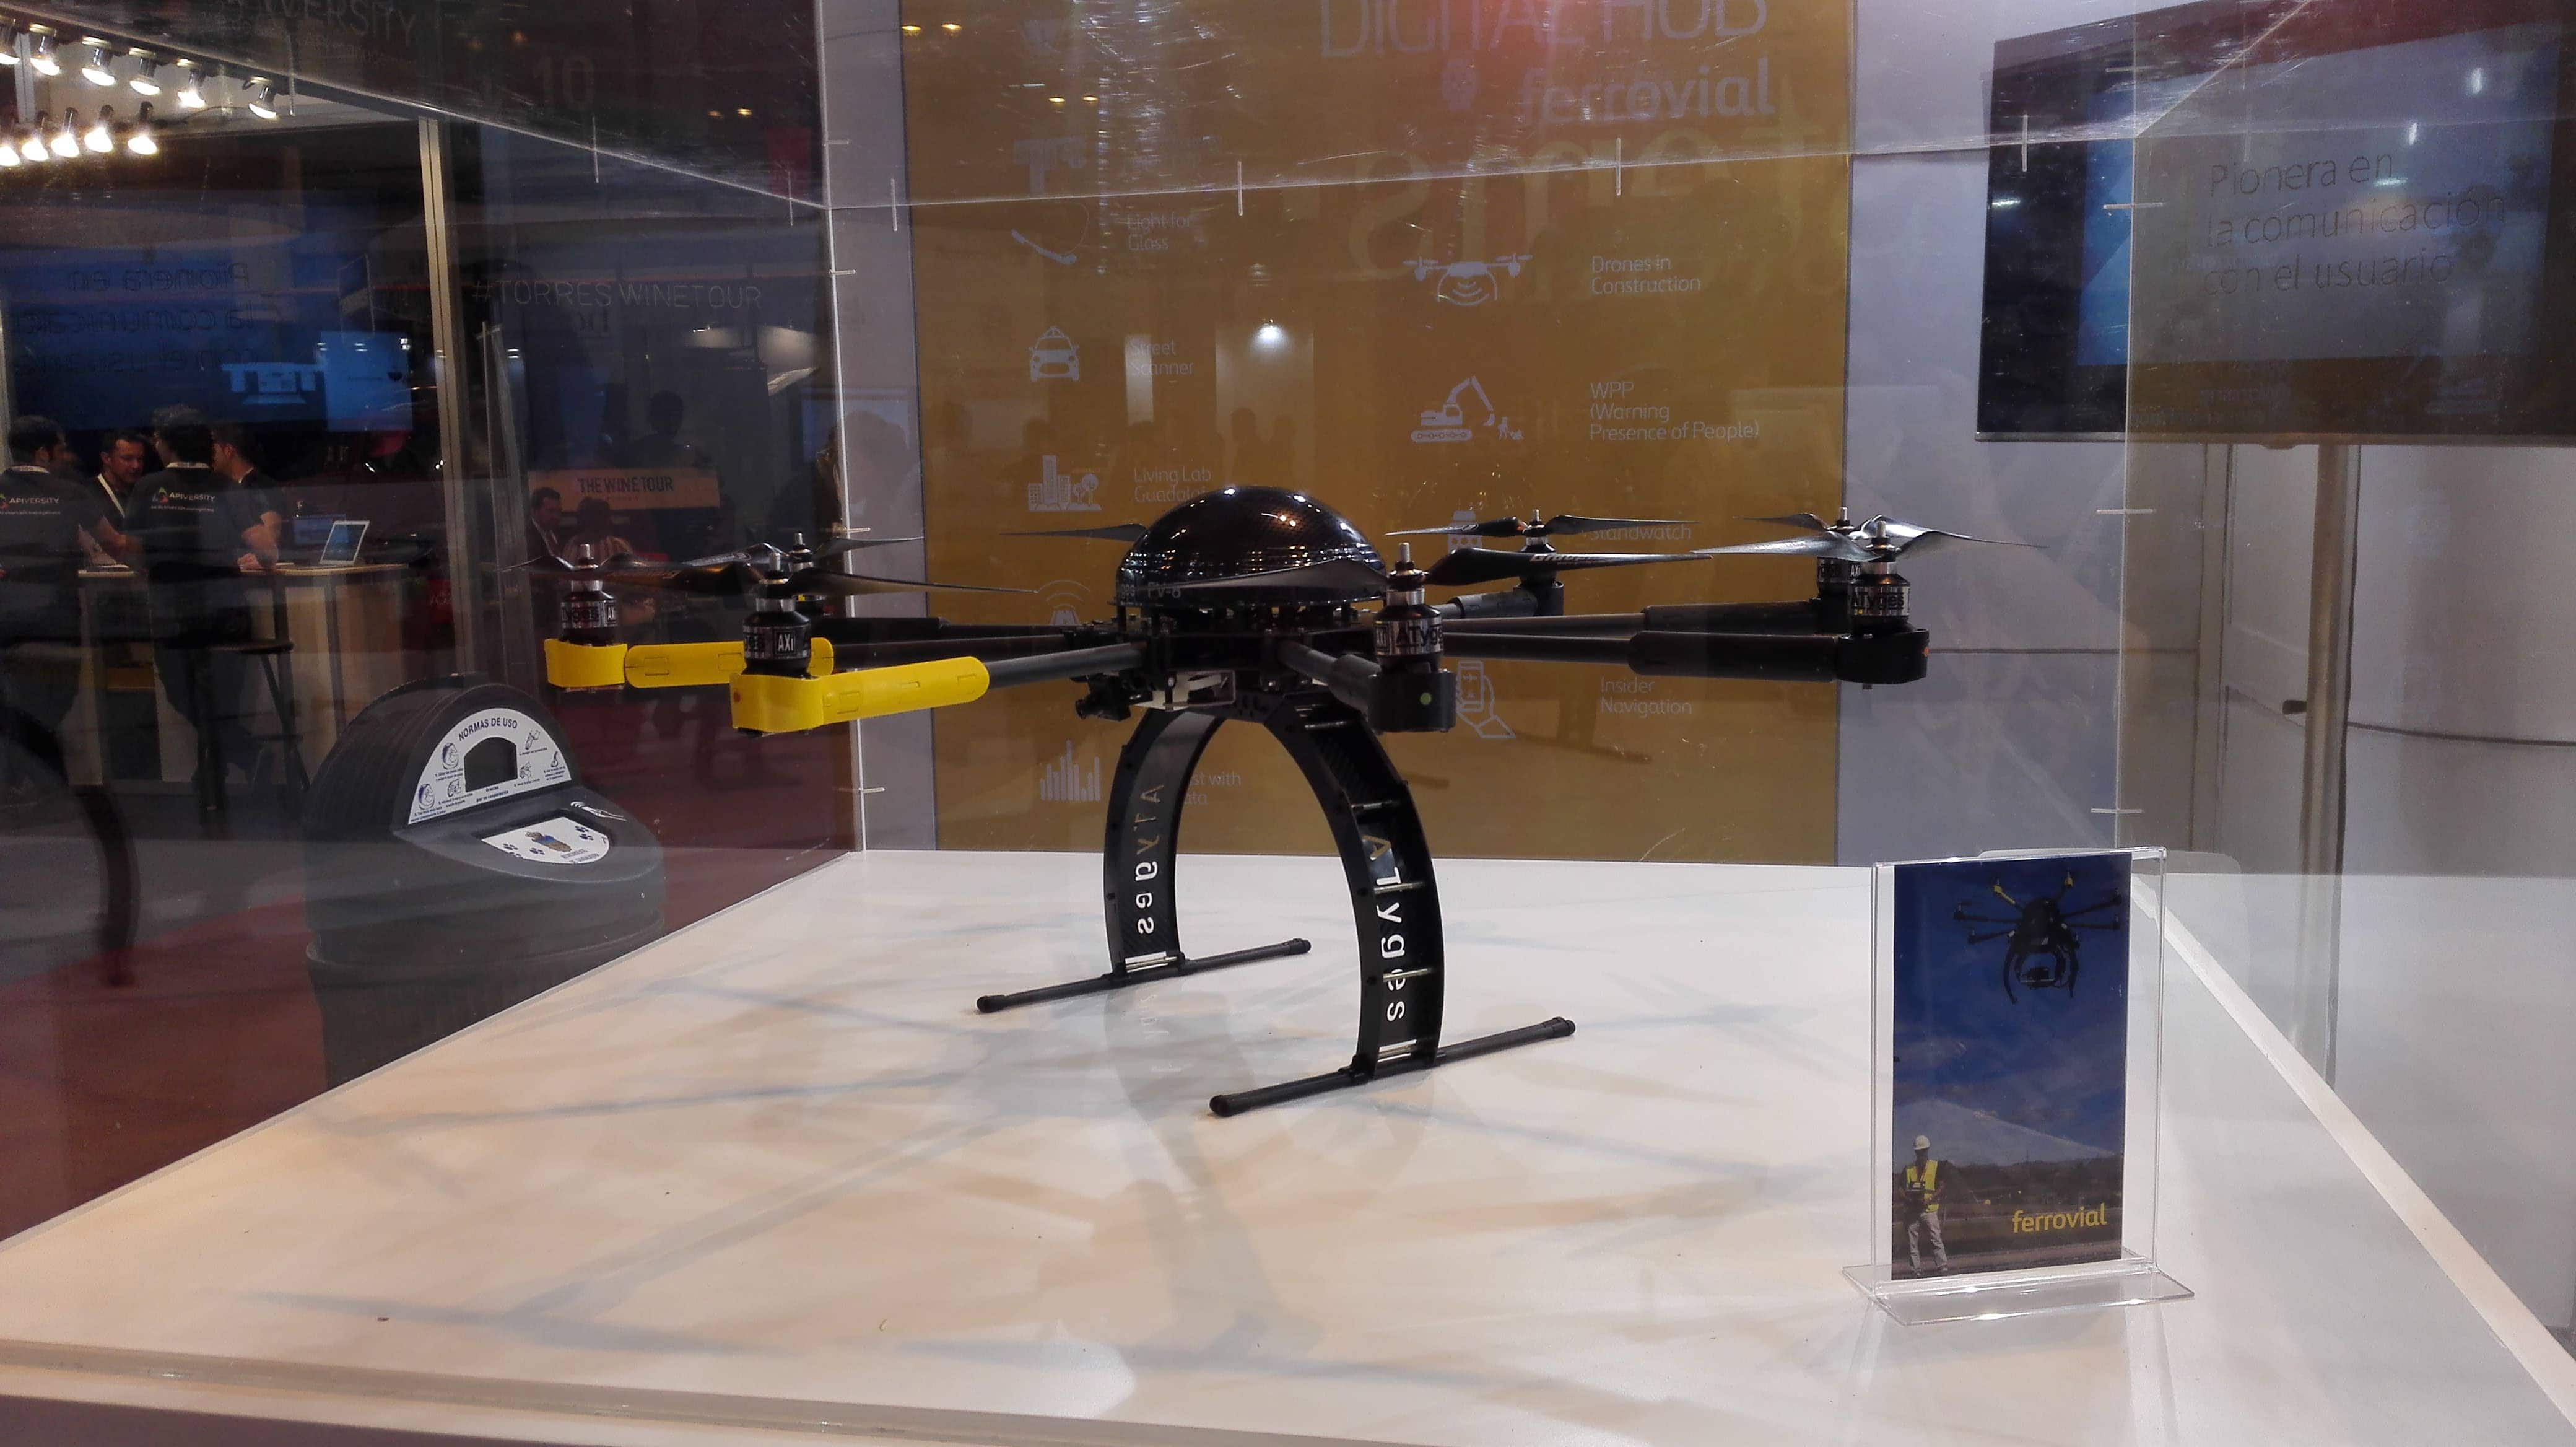 Drones used in construction at Ferrovial Agroman